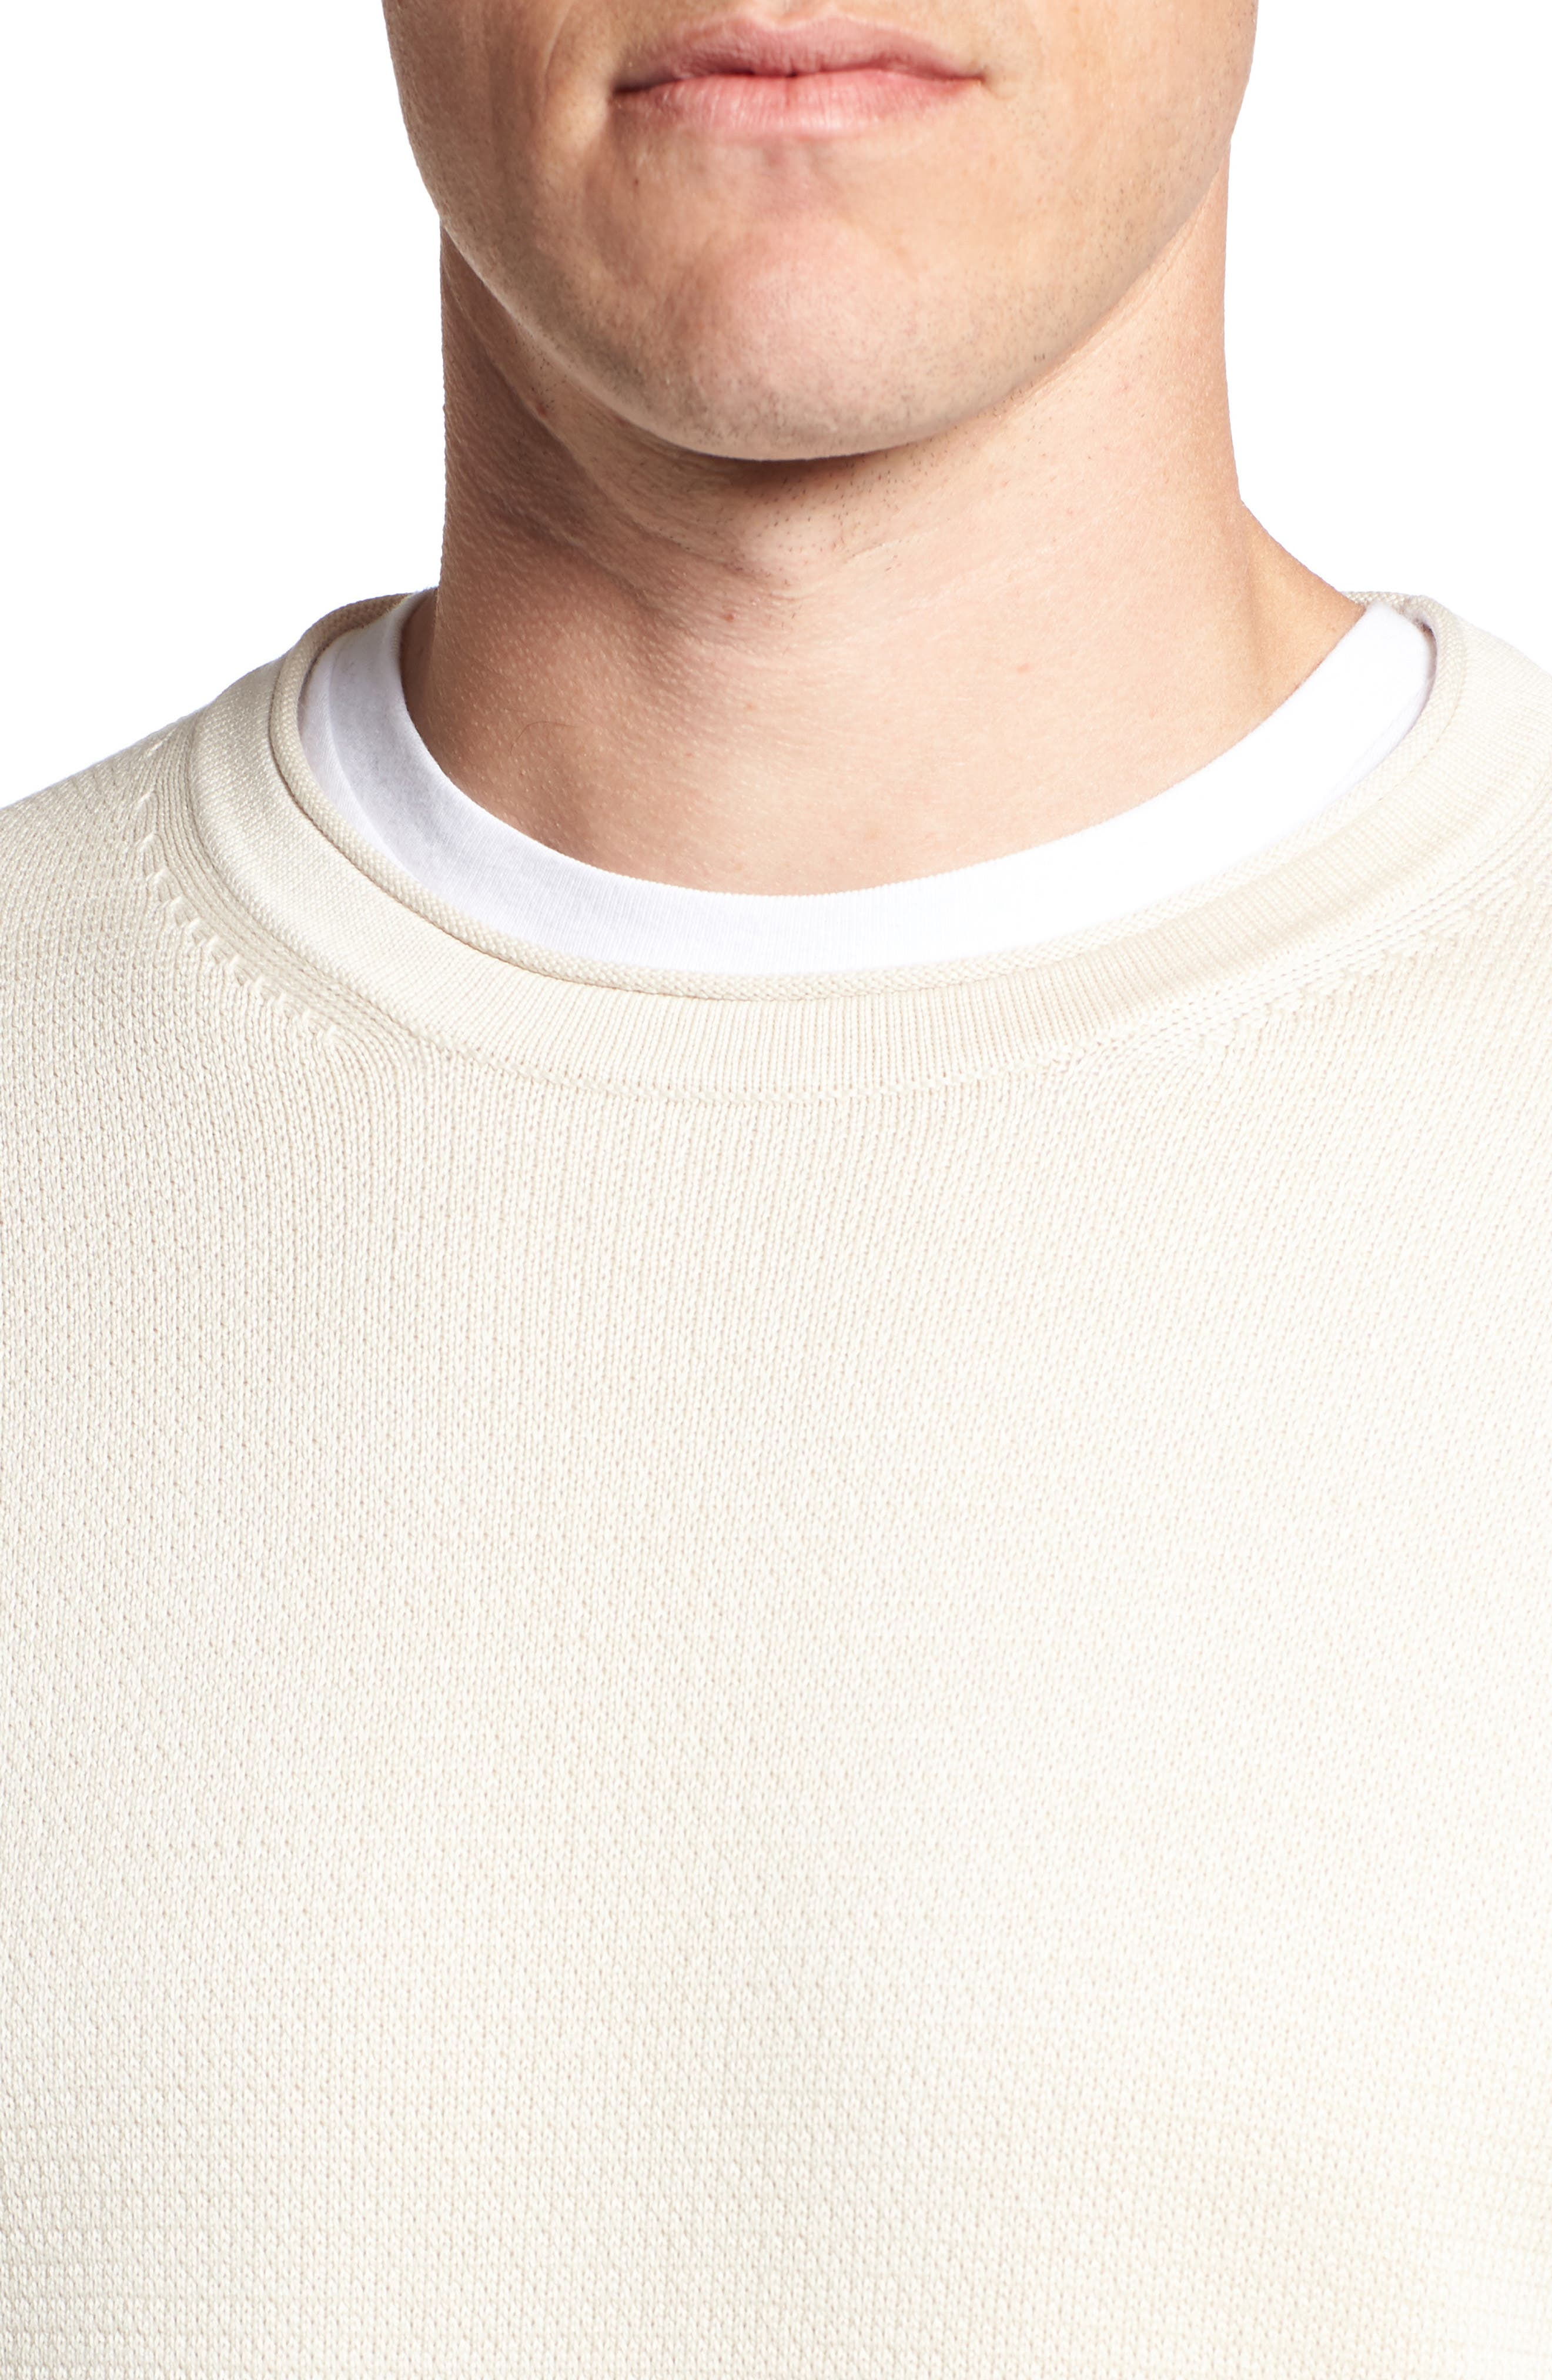 TOMMY BAHAMA,                             South Shore Flip Sweater,                             Alternate thumbnail 5, color,                             200